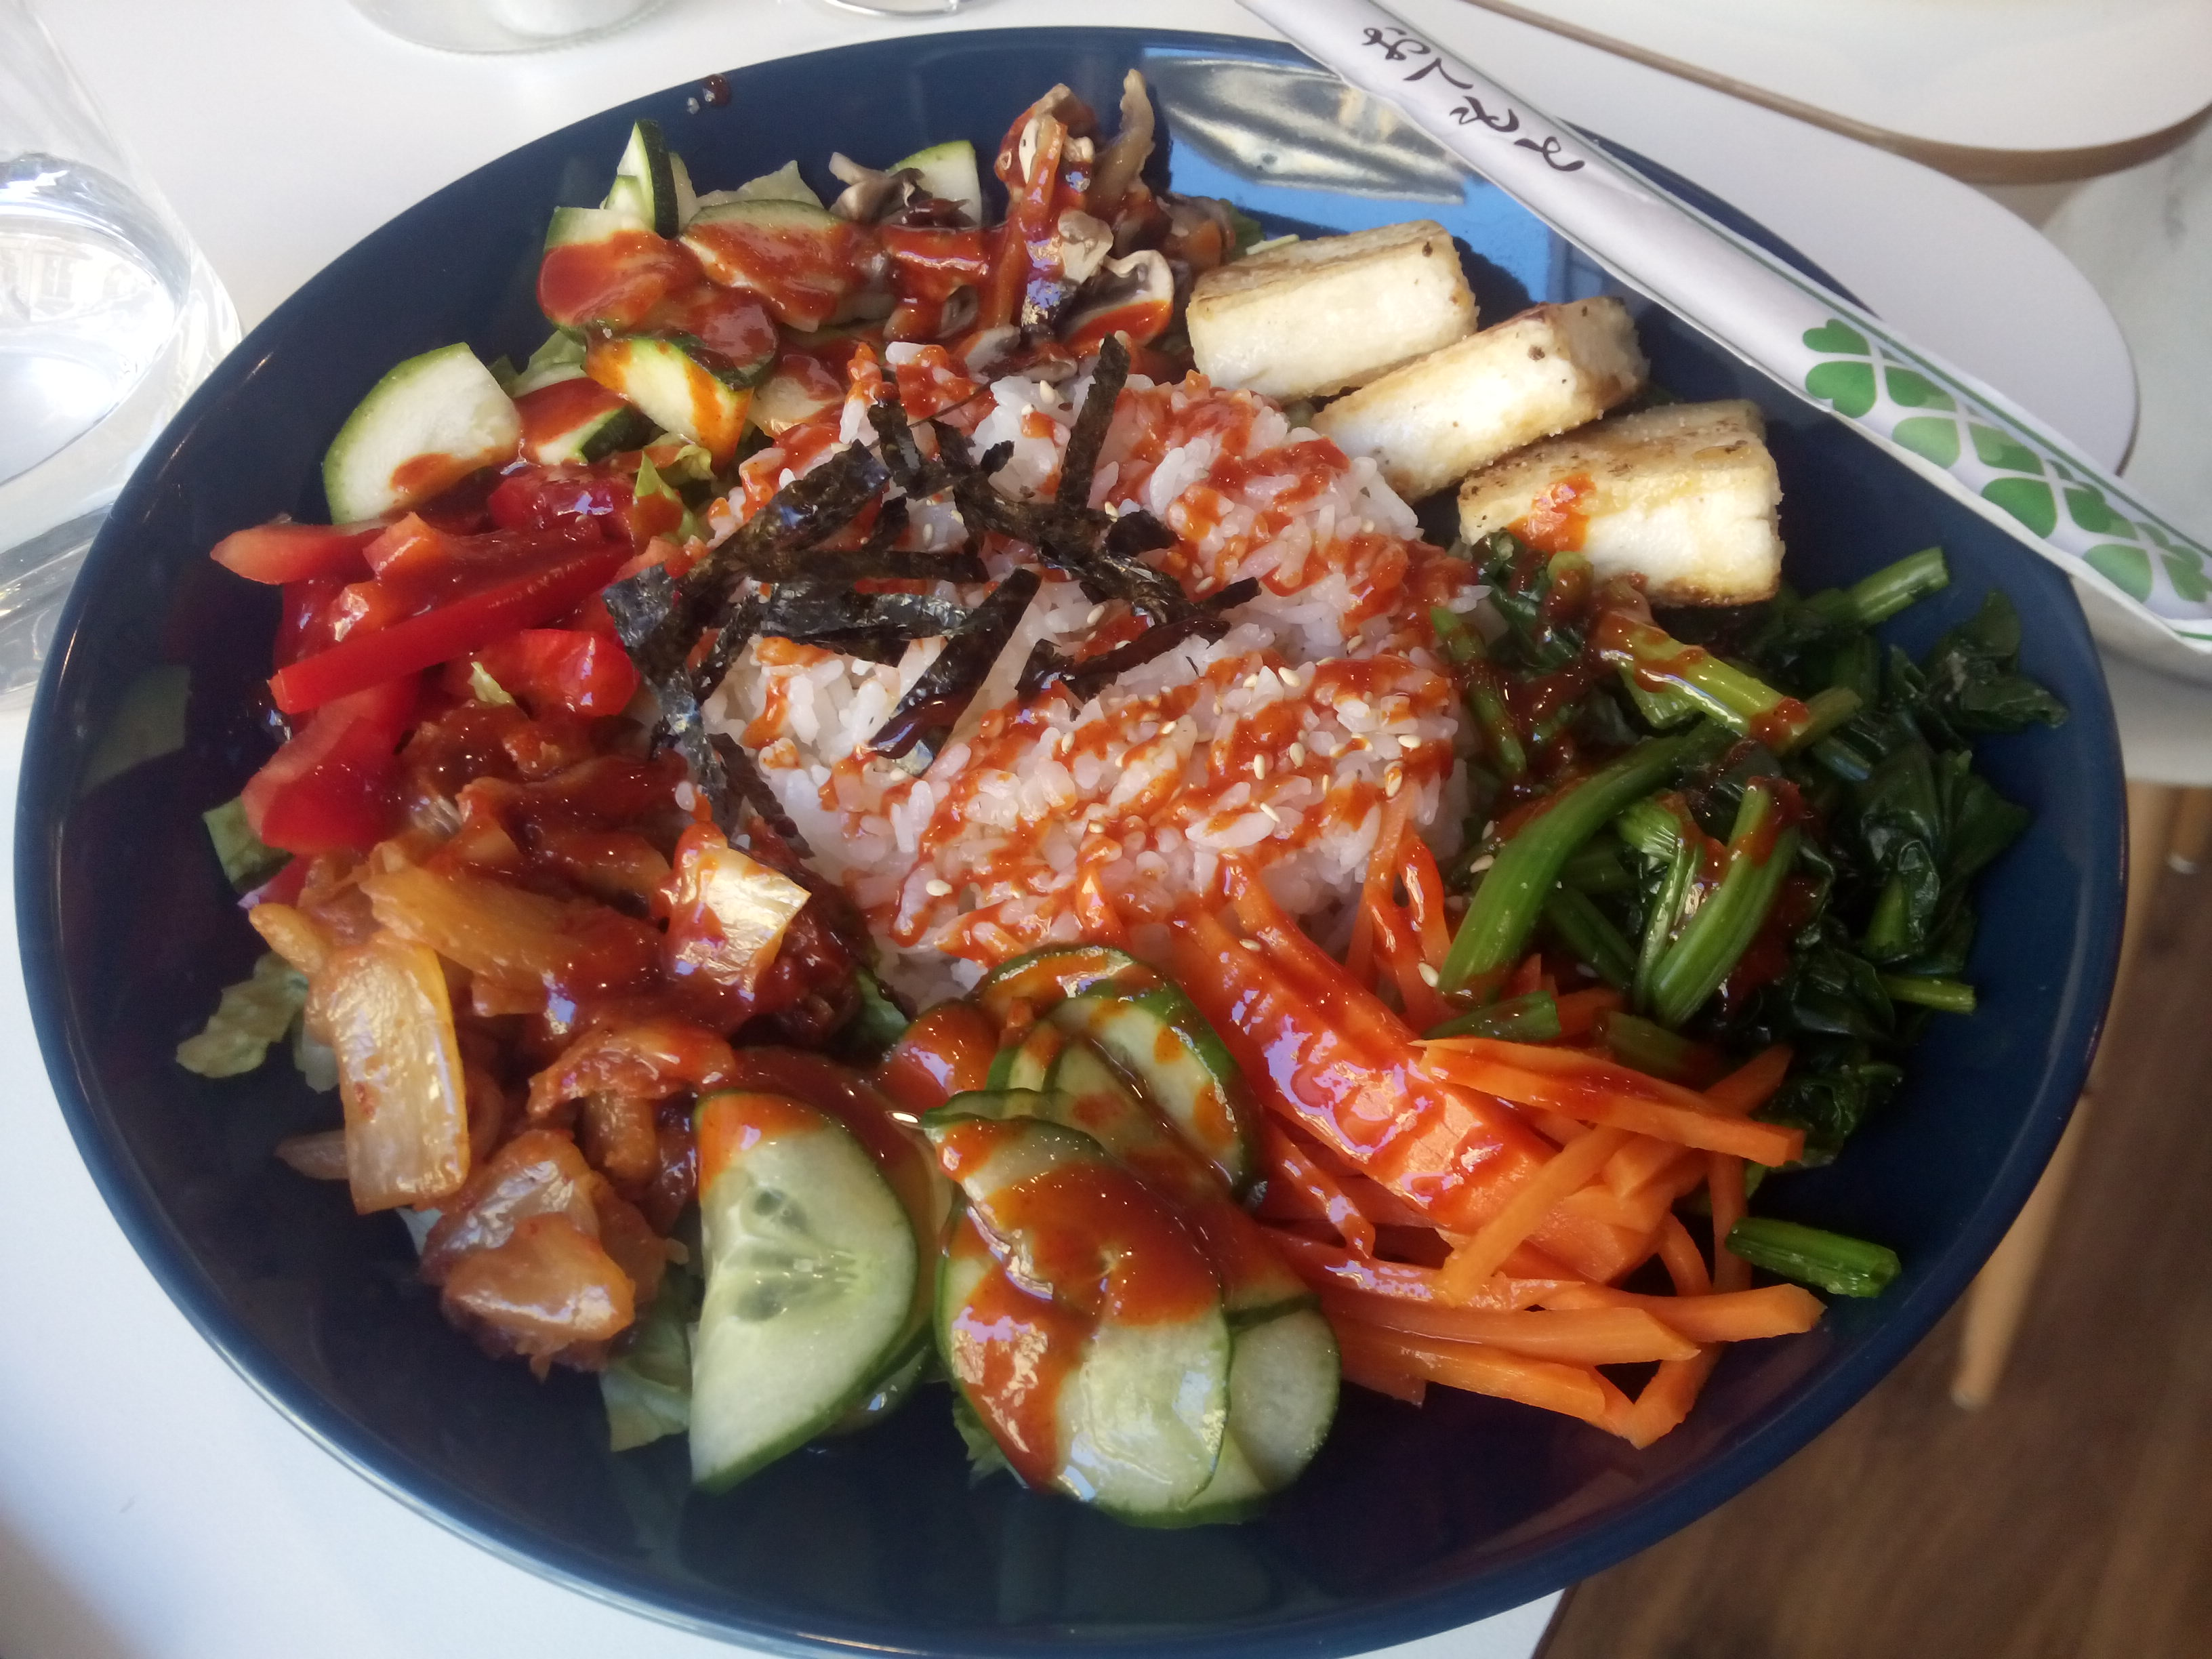 A black bowl with colourful salad and tofu, drizzled liberally with chilli sauce